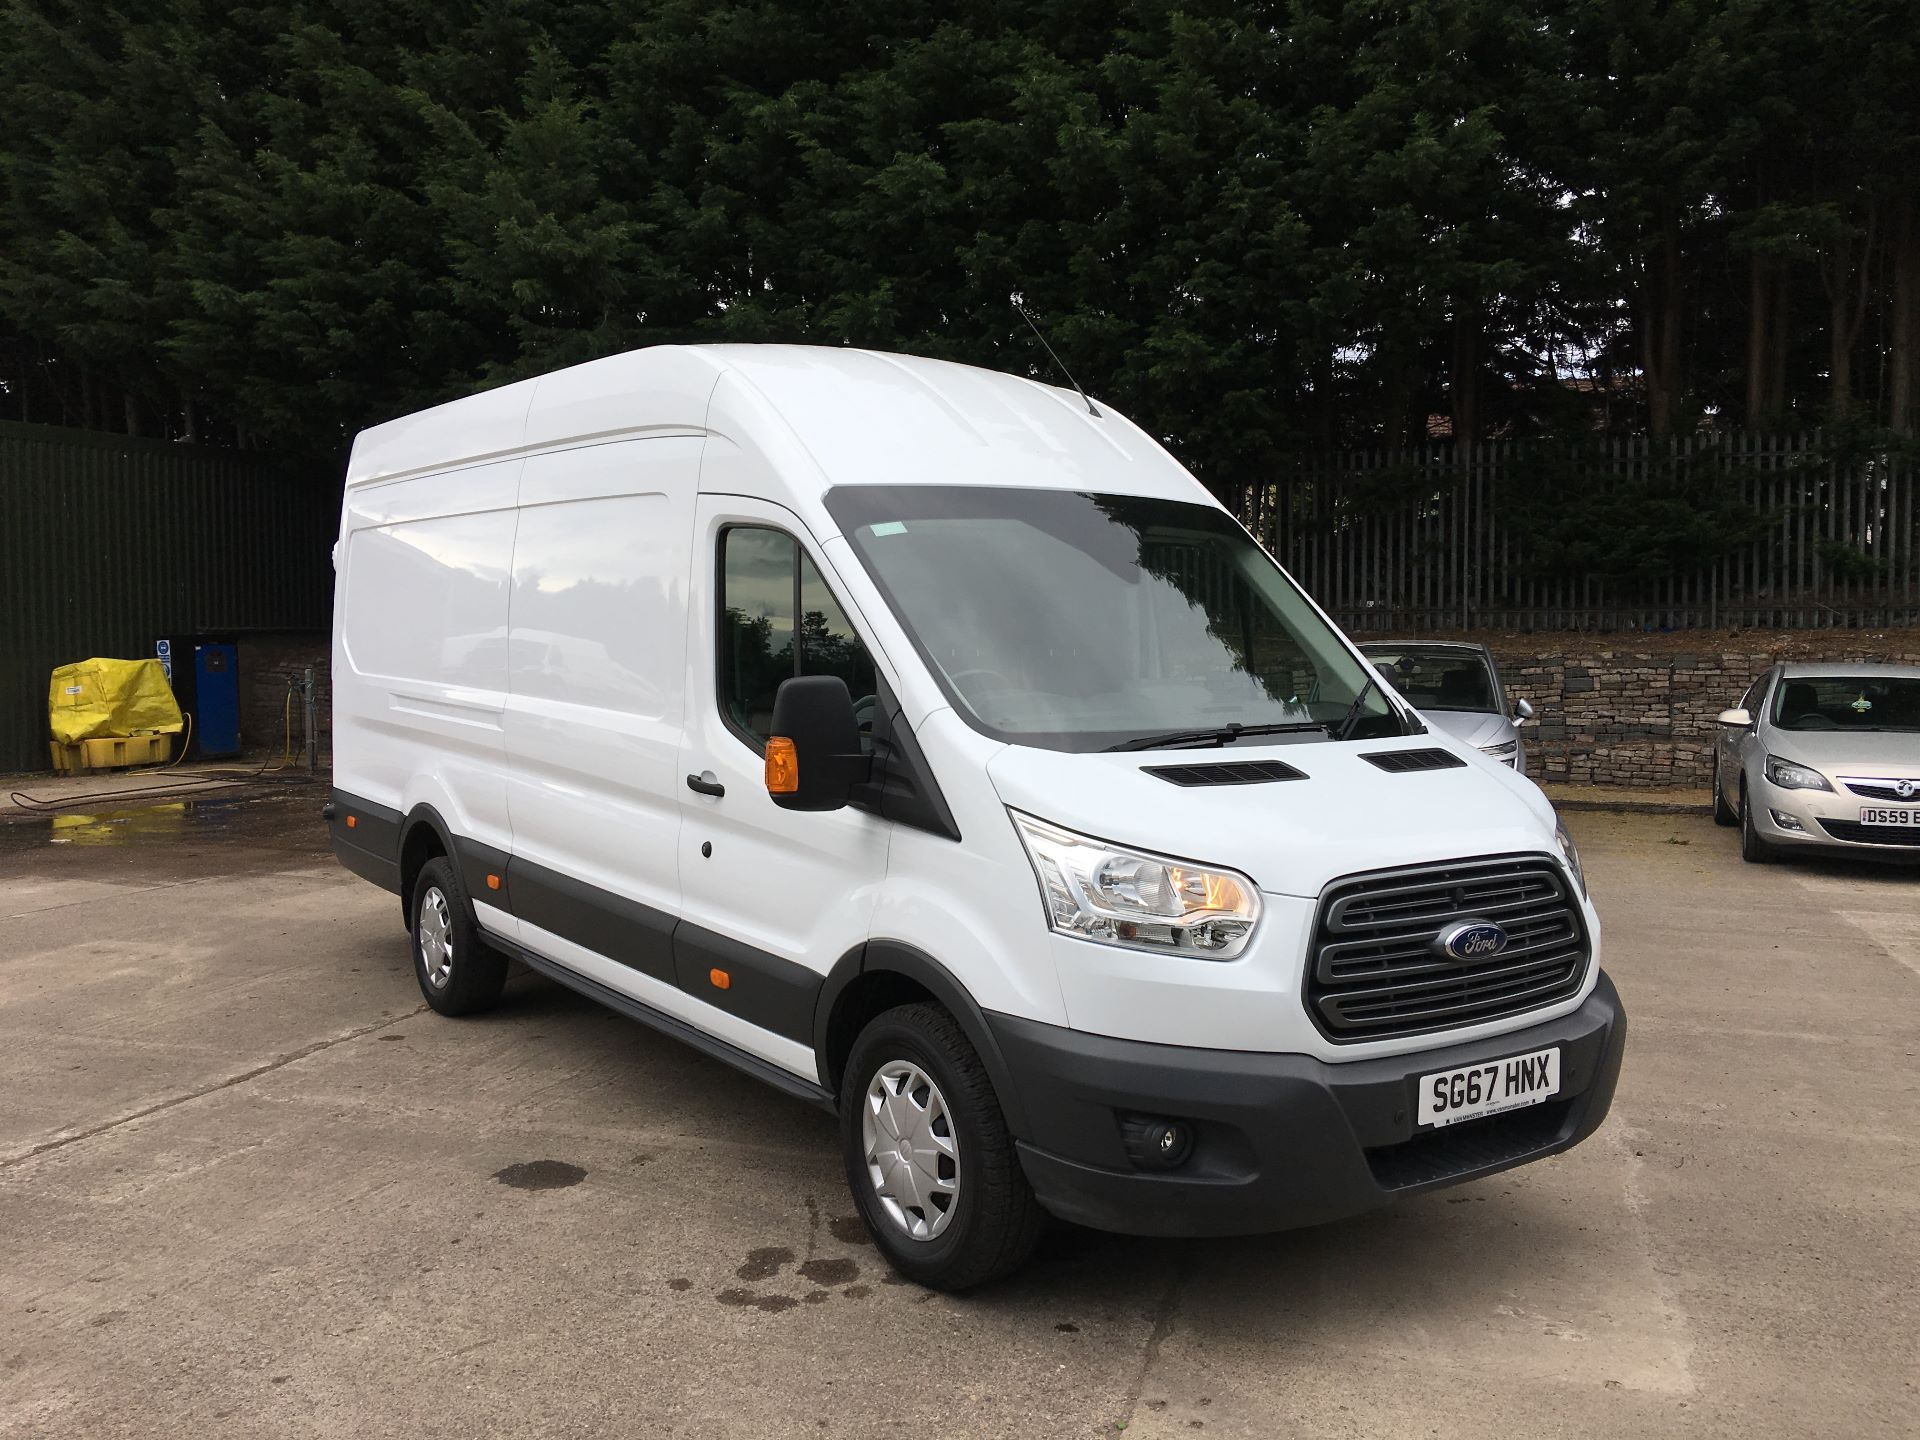 2017 Ford Transit 350 L4 DIESEL RWD 2.0 TDCI 130PS HIGH ROOF EURO 6 JUMBO (SG67HNX)